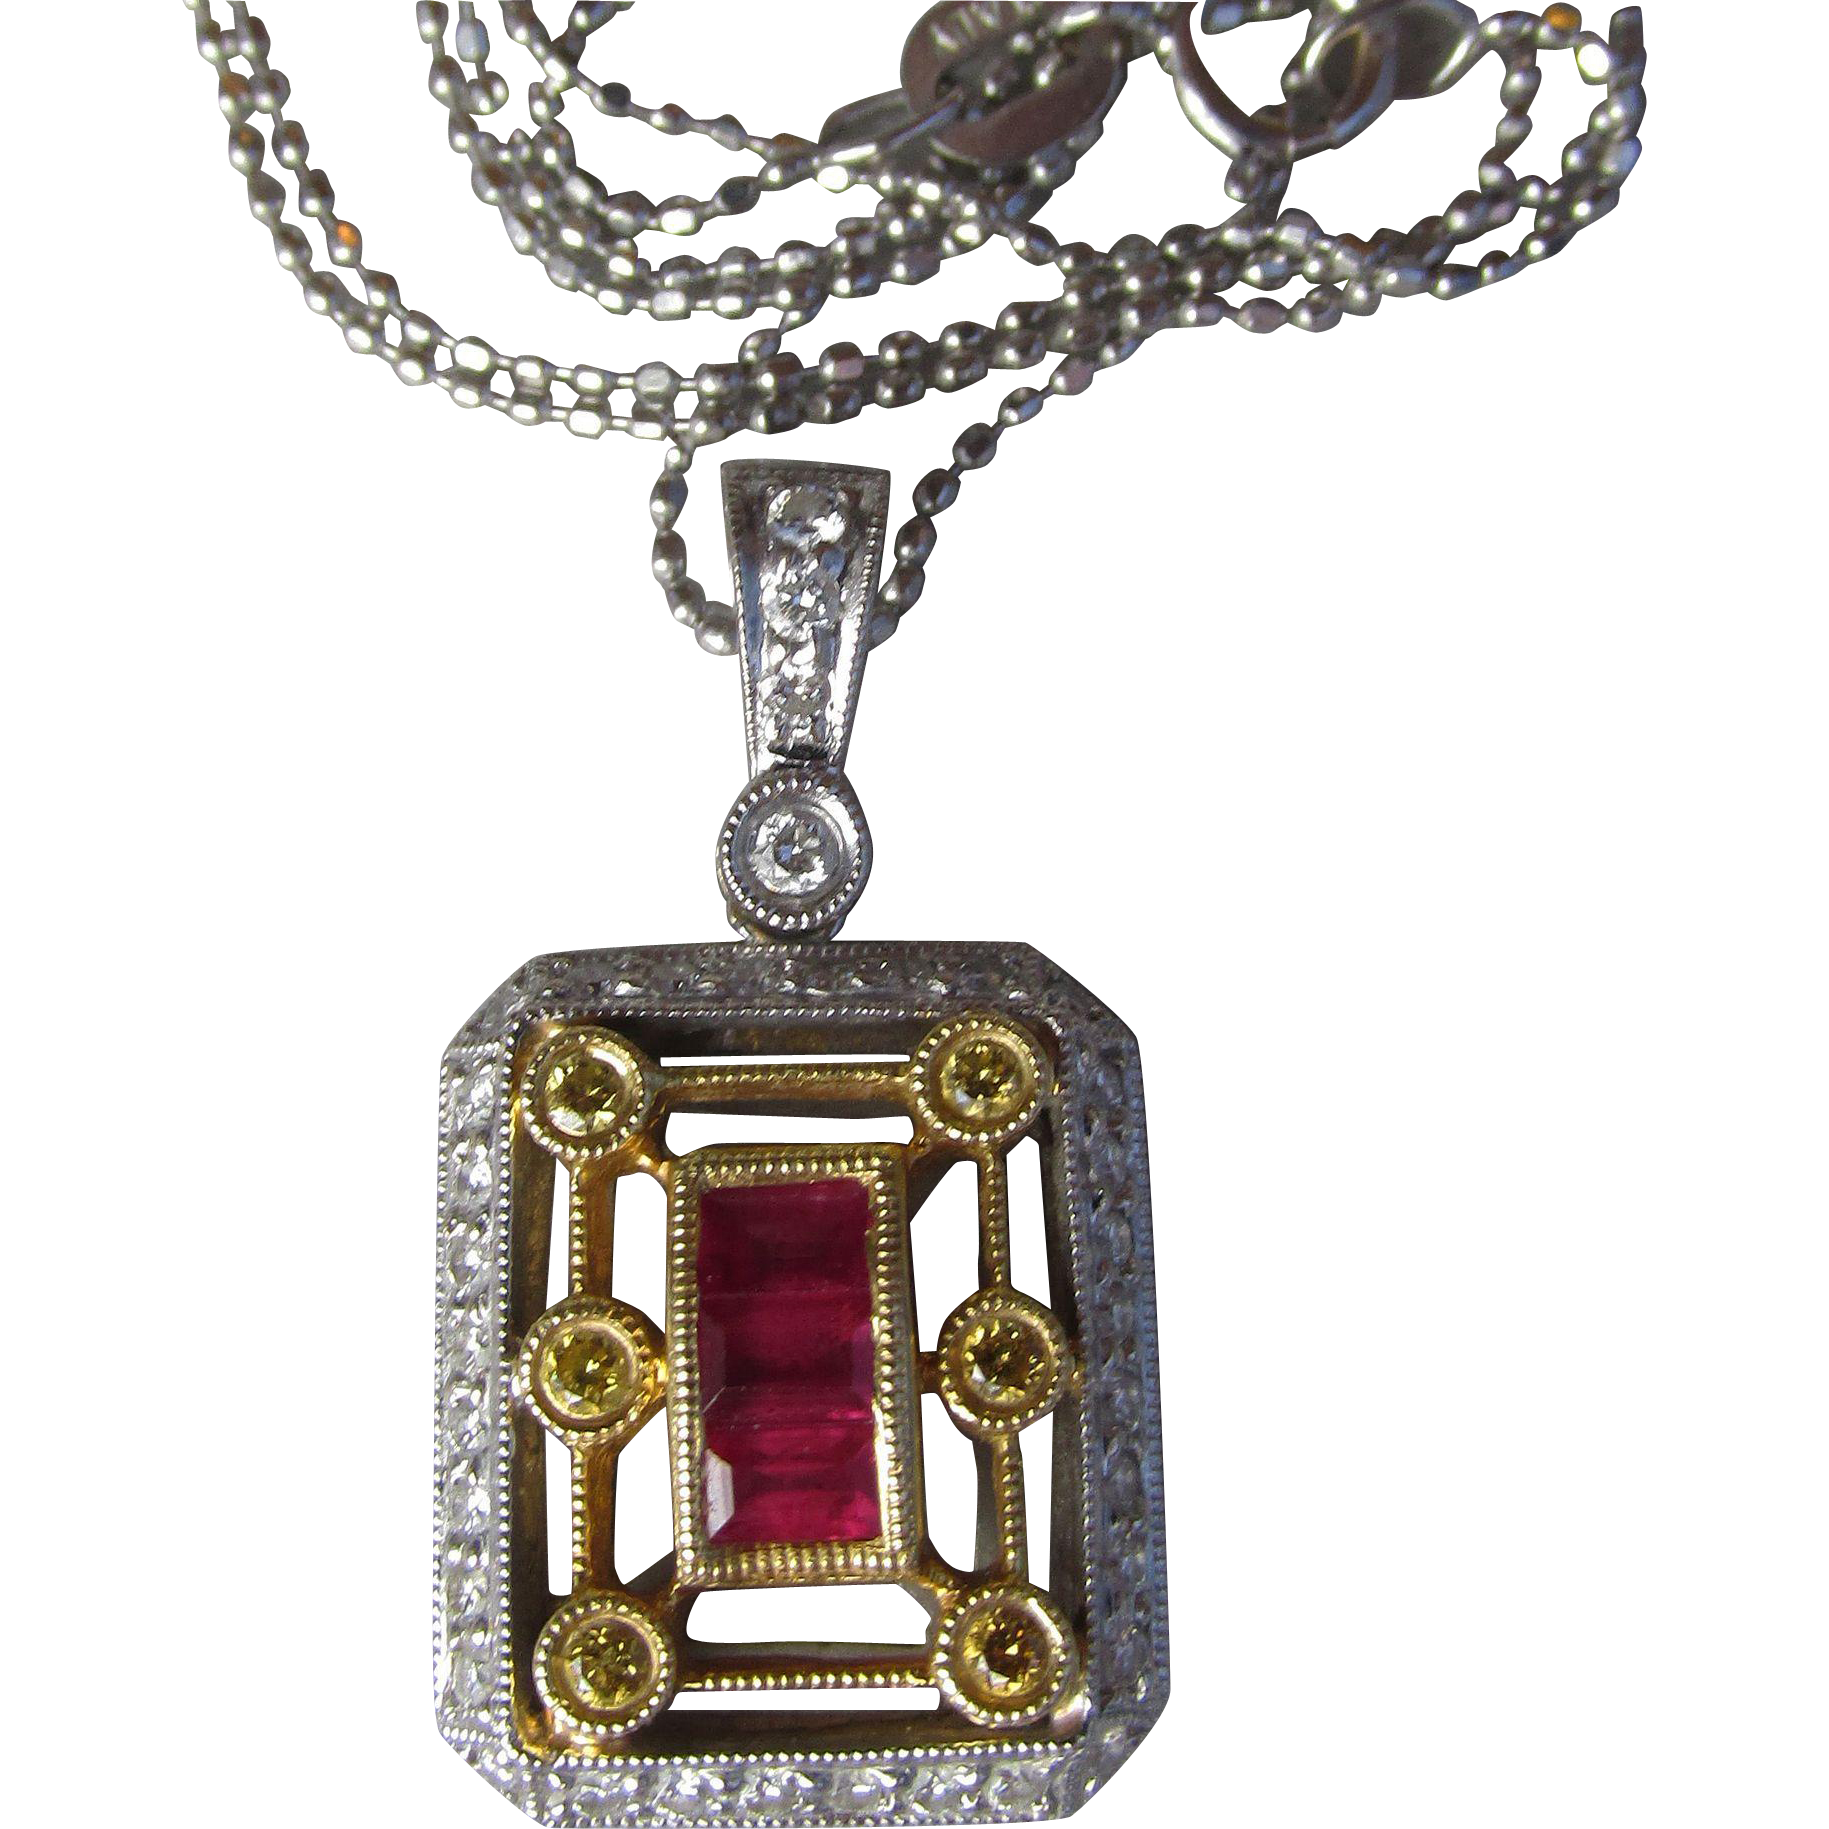 50% OFF - 18k Yellow & 14k White Gold Yellow Pave' Diamond & Ruby Vintage Deco Style Pendant Necklace